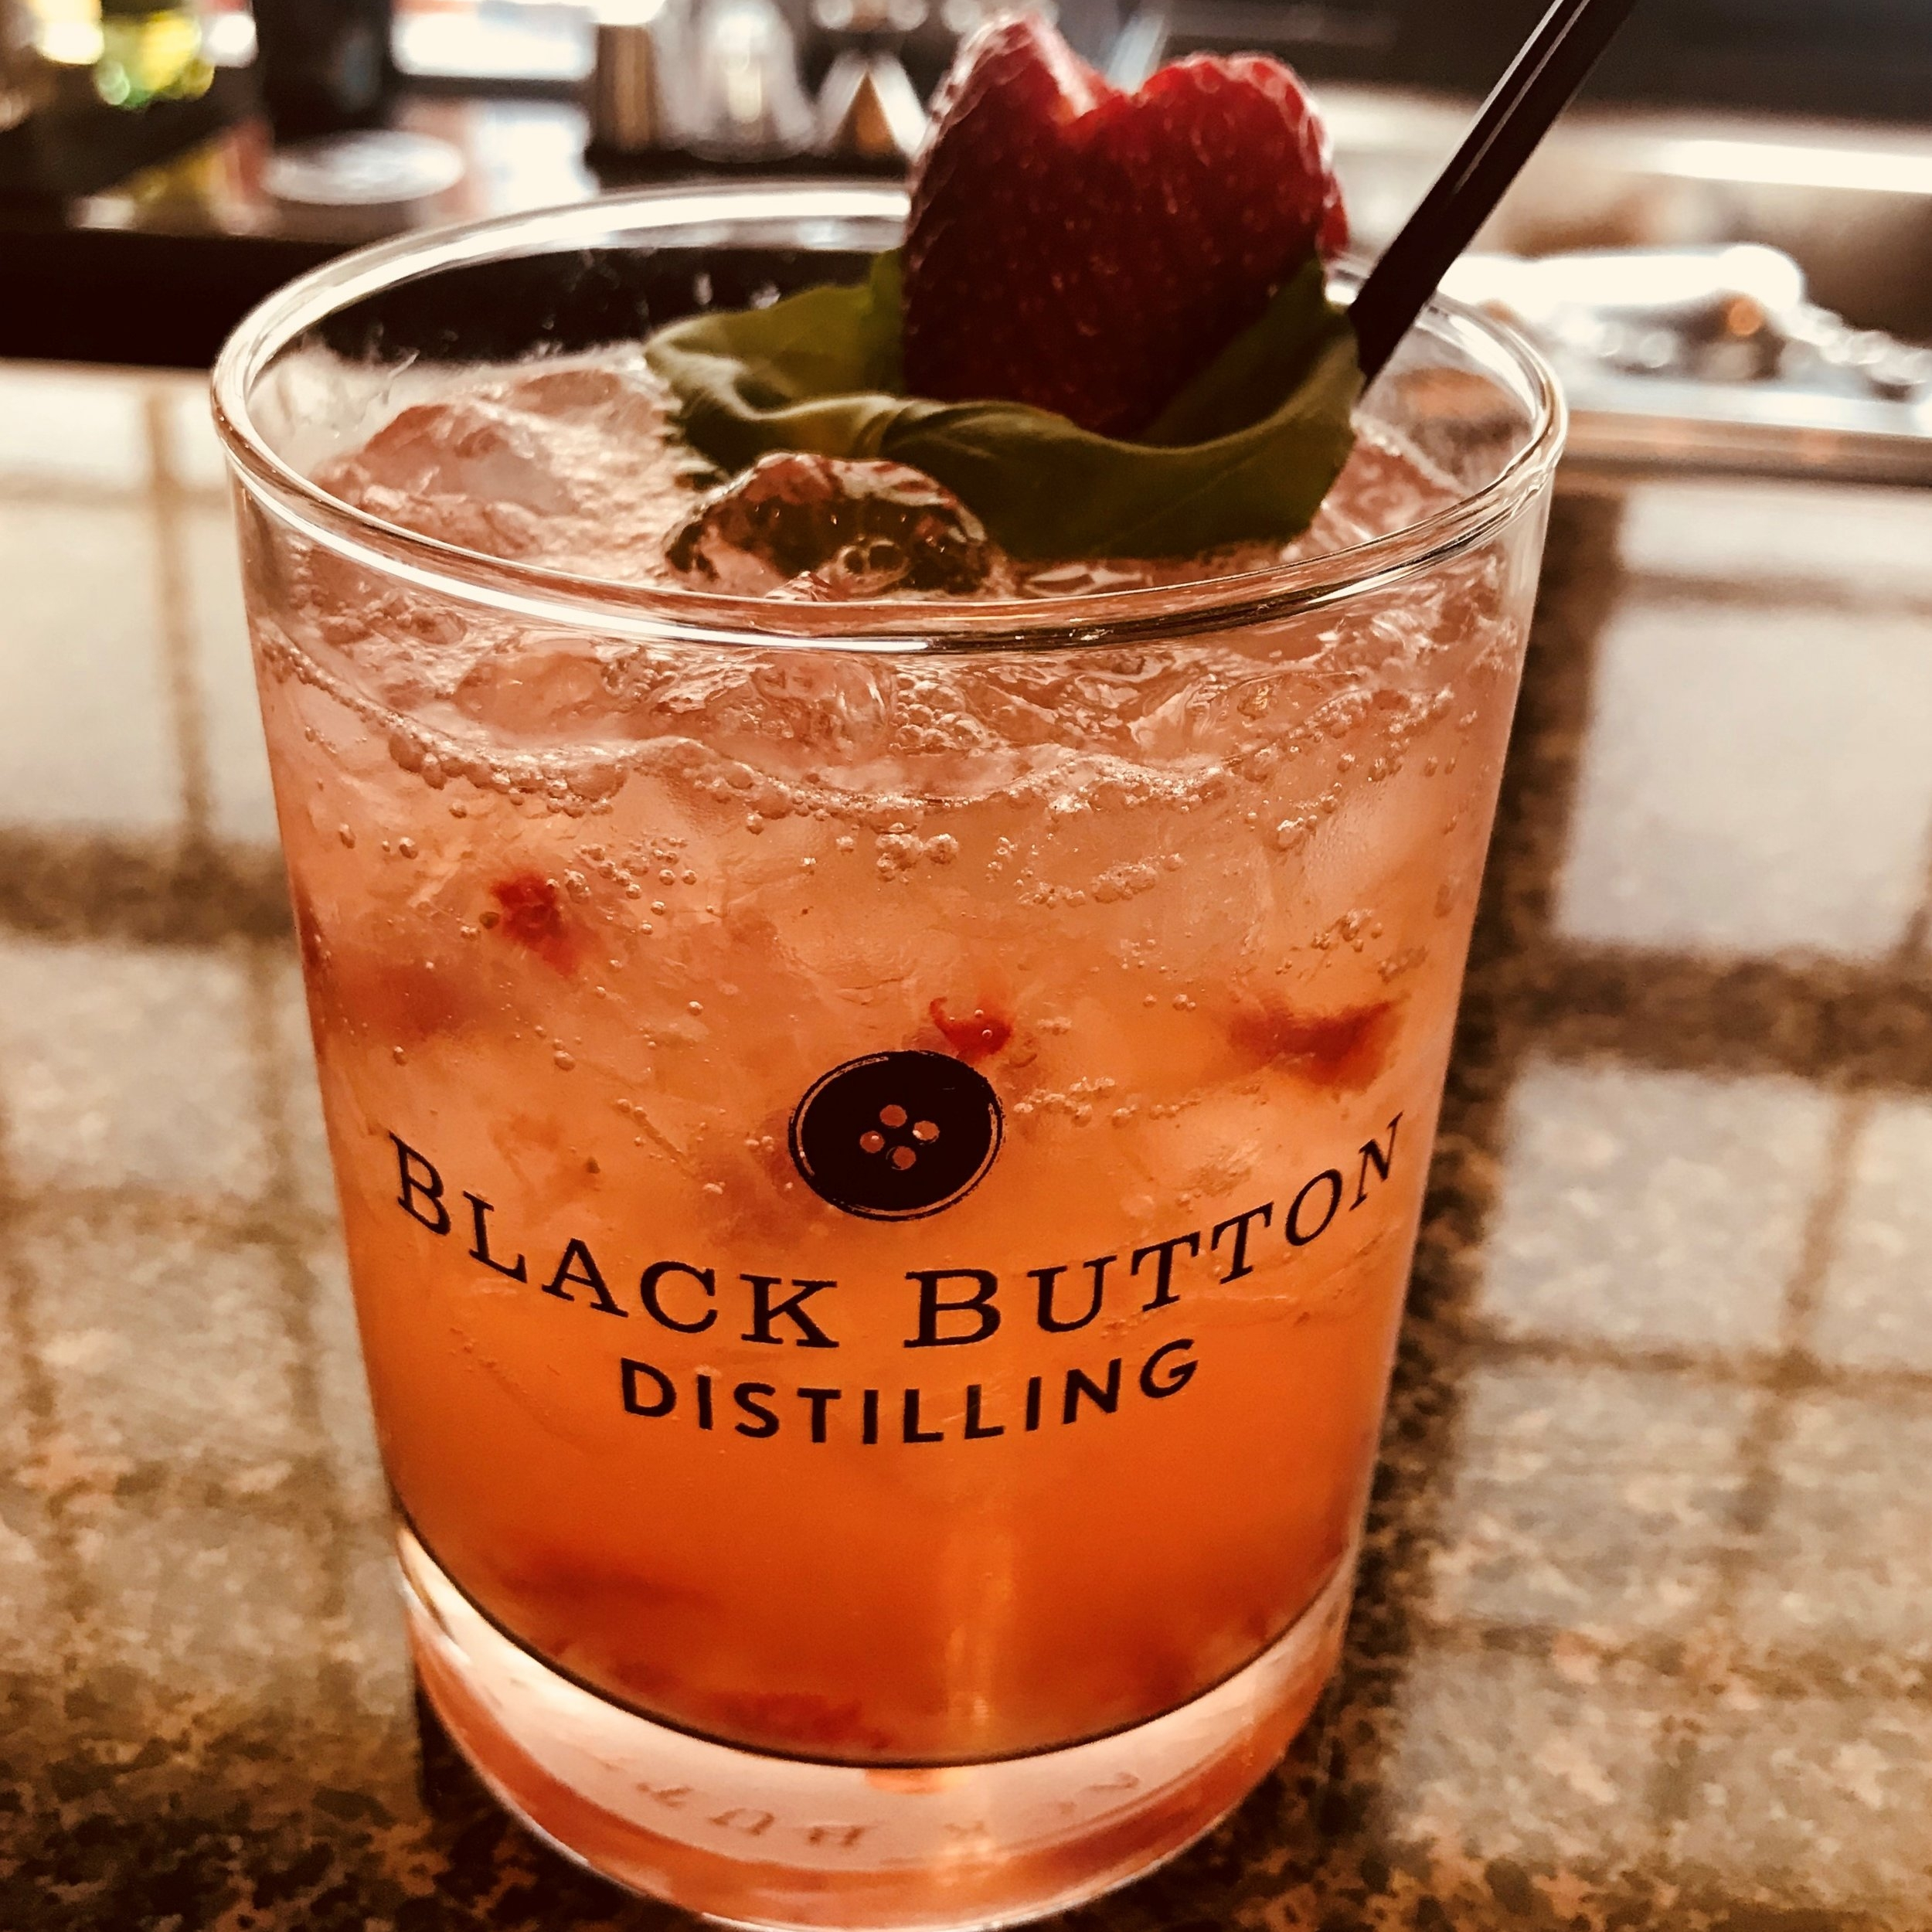 Black Button Distilling award winning citrus forward gin cocktail